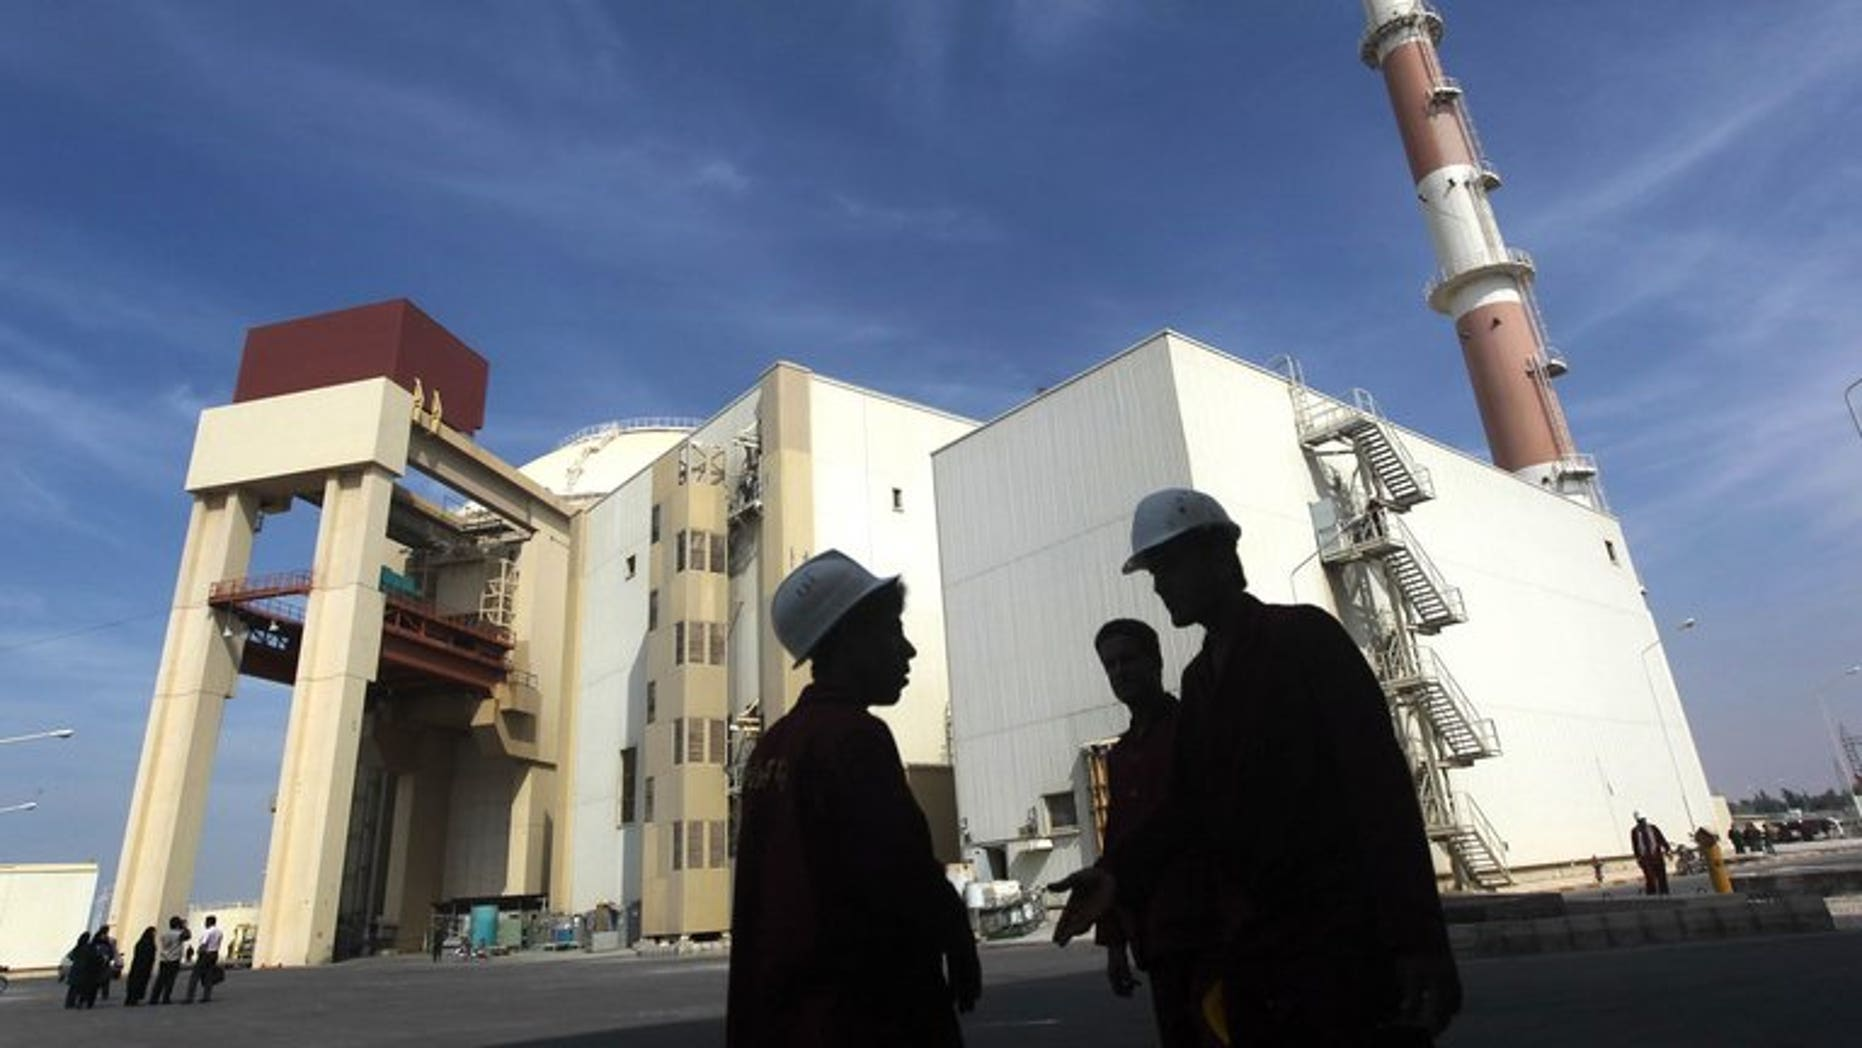 A picture taken on October 26, 2010 shows the reactor building at the Russian-built Bushehr nuclear power plant, 1200 km south of Tehran. Iran has about 18,000 centrifuges, including 10,000 active ones, the outgoing head of the country's atomic agency said Saturday, confirming figures from the UN watchdog overseeing its disputed nuclear drive.